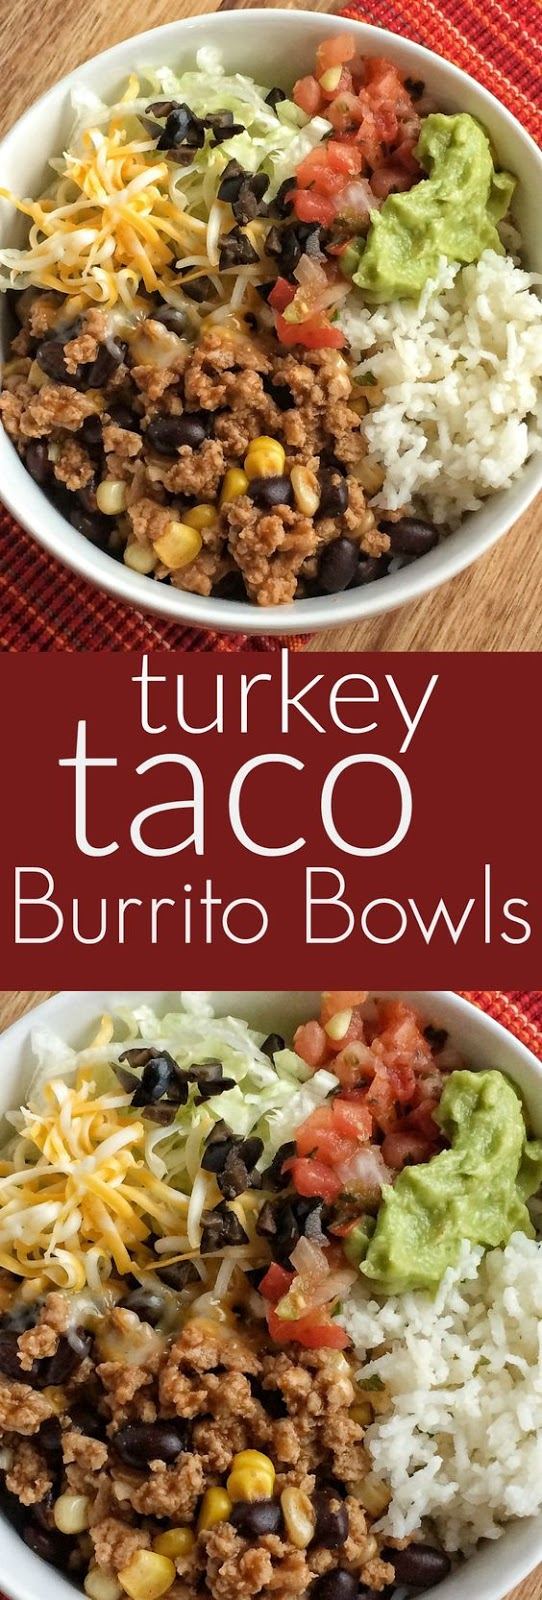 Turkey Taco Burrito Bowls   #DESSERTS #HEALTHYFOOD #EASYRECIPES #DINNER #LAUCH #DELICIOUS #EASY #HOLIDAYS #RECIPE #SPECIALDIET #WORLDCUISINE #CAKE #APPETIZERS #HEALTHYRECIPES #DRINKS #COOKINGMETHOD #ITALIANRECIPES #MEAT #VEGANRECIPES #COOKIES #PASTA #FRUIT #SALAD #SOUPAPPETIZERS #NONALCOHOLICDRINKS #MEALPLANNING #VEGETABLES #SOUP #PASTRY #CHOCOLATE #DAIRY #ALCOHOLICDRINKS #BULGURSALAD #BAKING #SNACKS #BEEFRECIPES #MEATAPPETIZERS #MEXICANRECIPES #BREAD #ASIANRECIPES #SEAFOODAPPETIZERS #MUFFINS #BREAKFASTANDBRUNCH #CONDIMENTS #CUPCAKES #CHEESE #CHICKENRECIPES #PIE #COFFEE #NOBAKEDESSERTS #HEALTHYSNACKS #SEAFOOD #GRAIN #LUNCHESDINNERS #MEXICAN #QUICKBREAD #LIQUOR